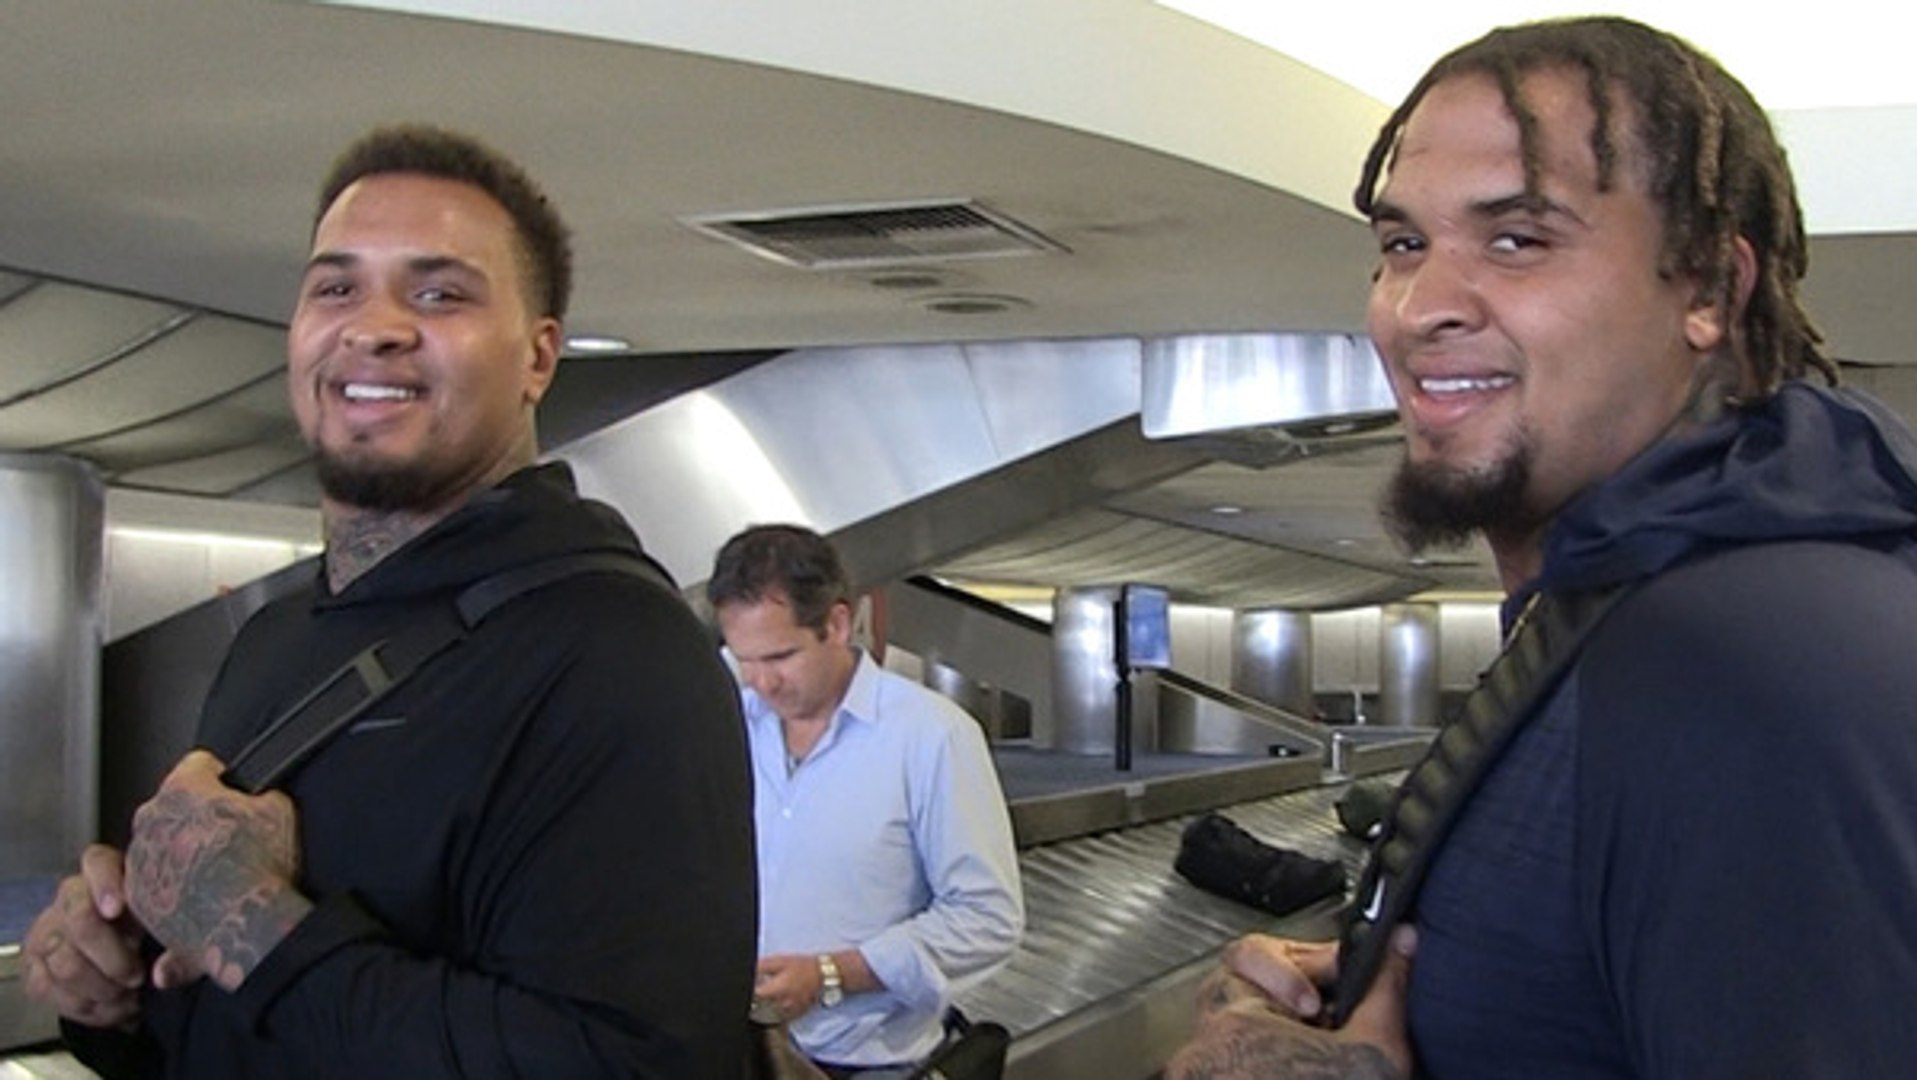 NFL's Pouncey Bros -- Miami Strippers CRUSH Pittsburgh ... Here's Why